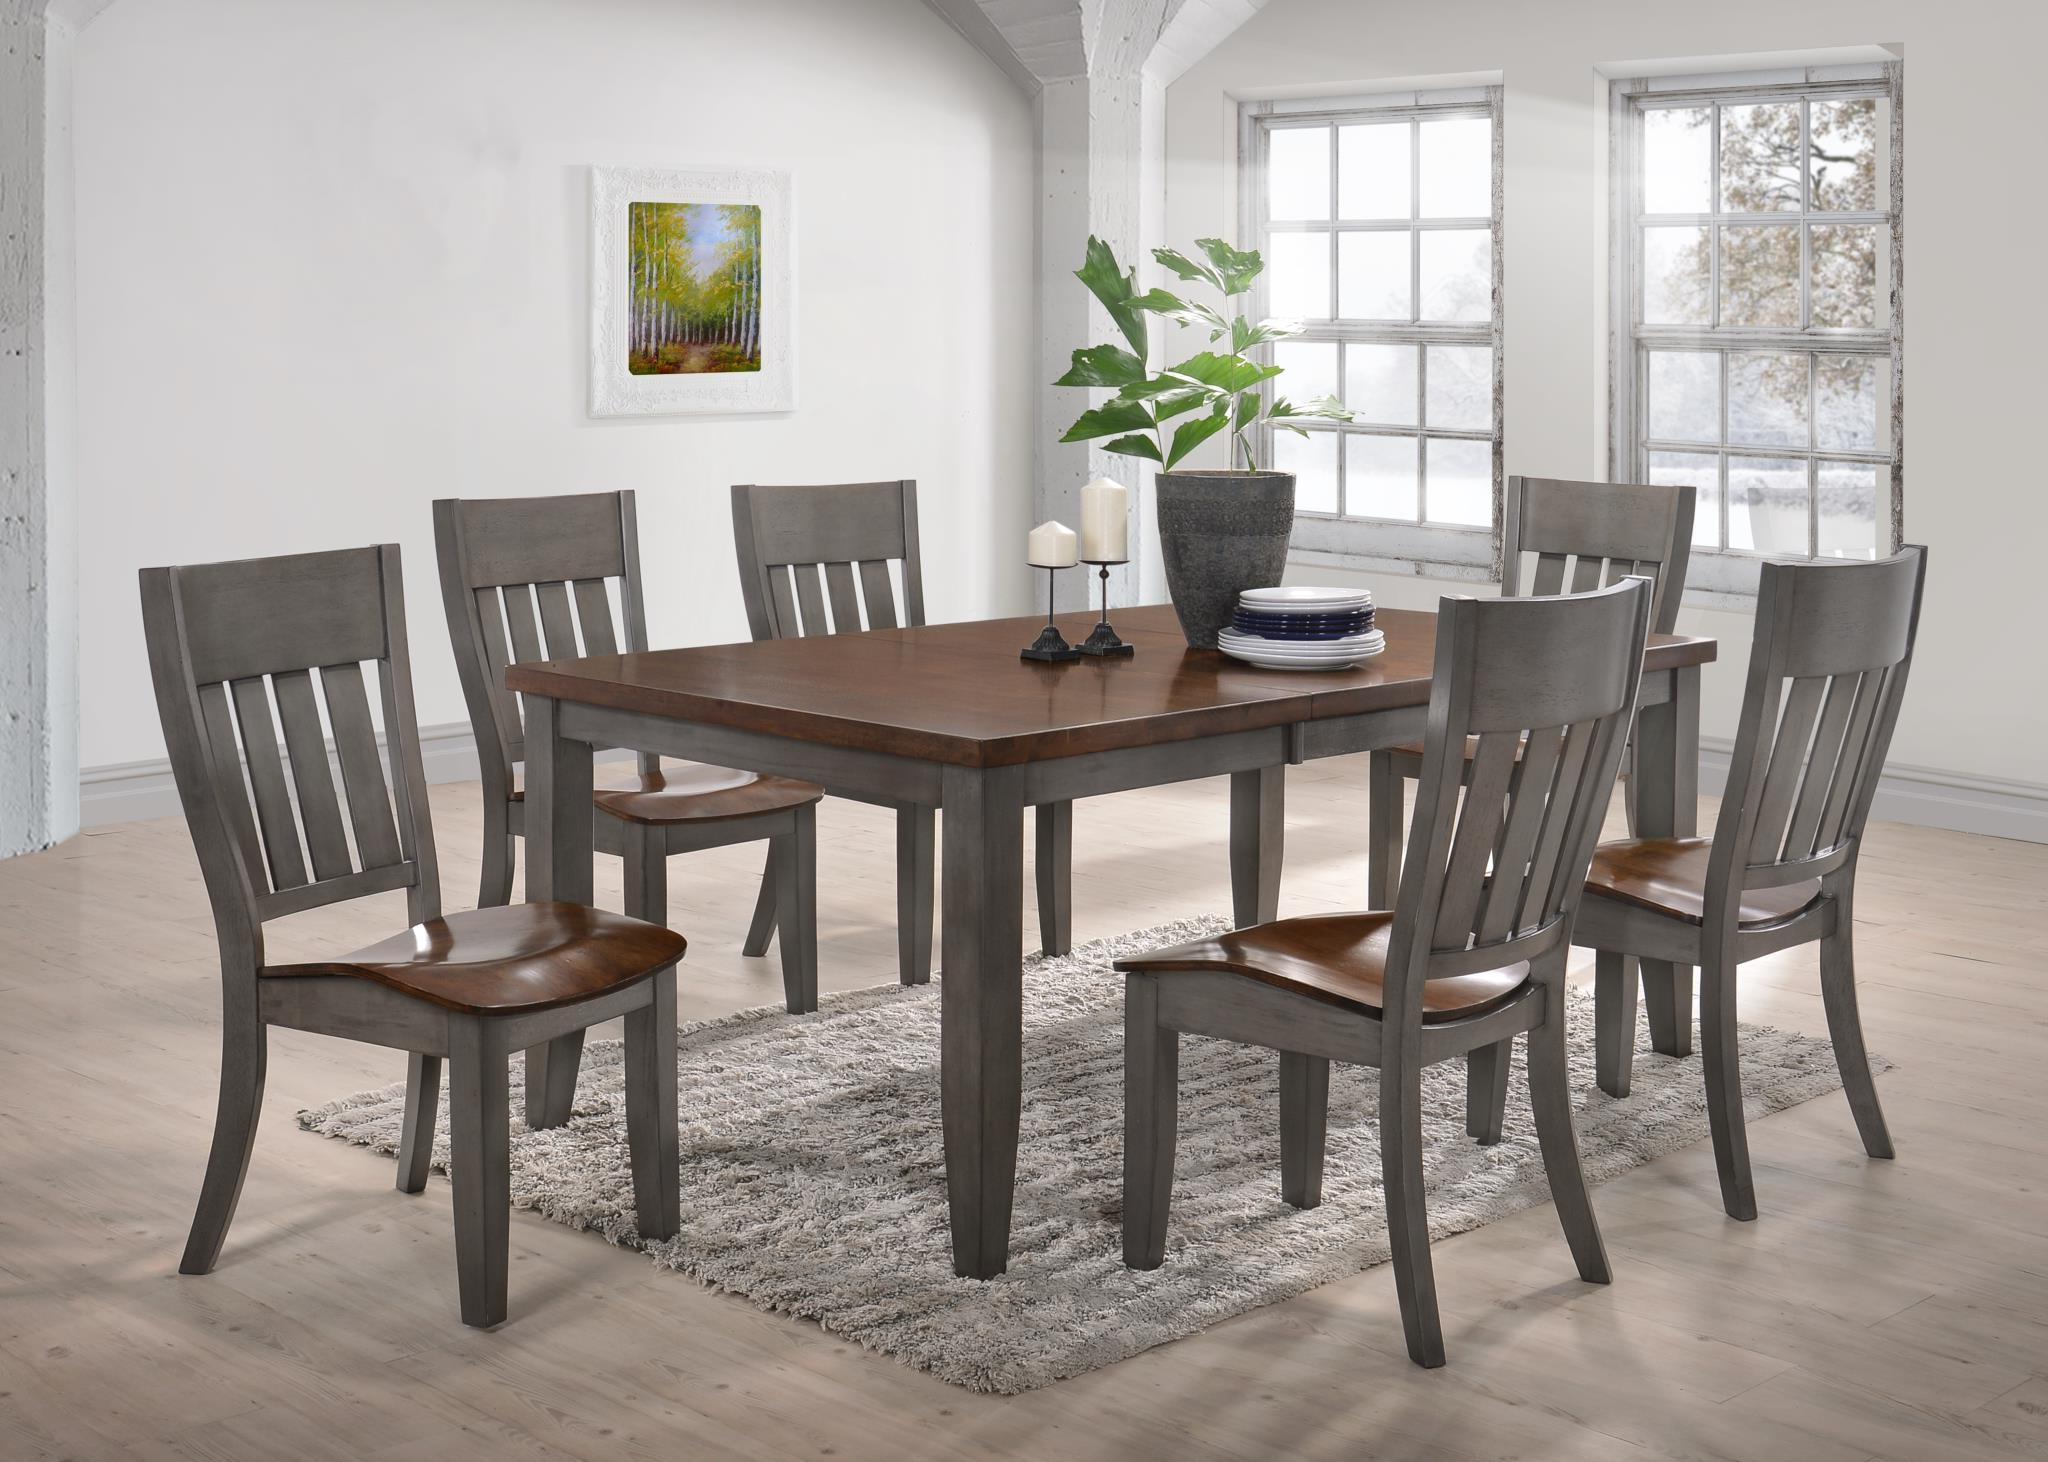 Springfield 3 Piece Dining Sets Throughout 2020 American Heritage – Cedar Hill Furniture (View 20 of 25)